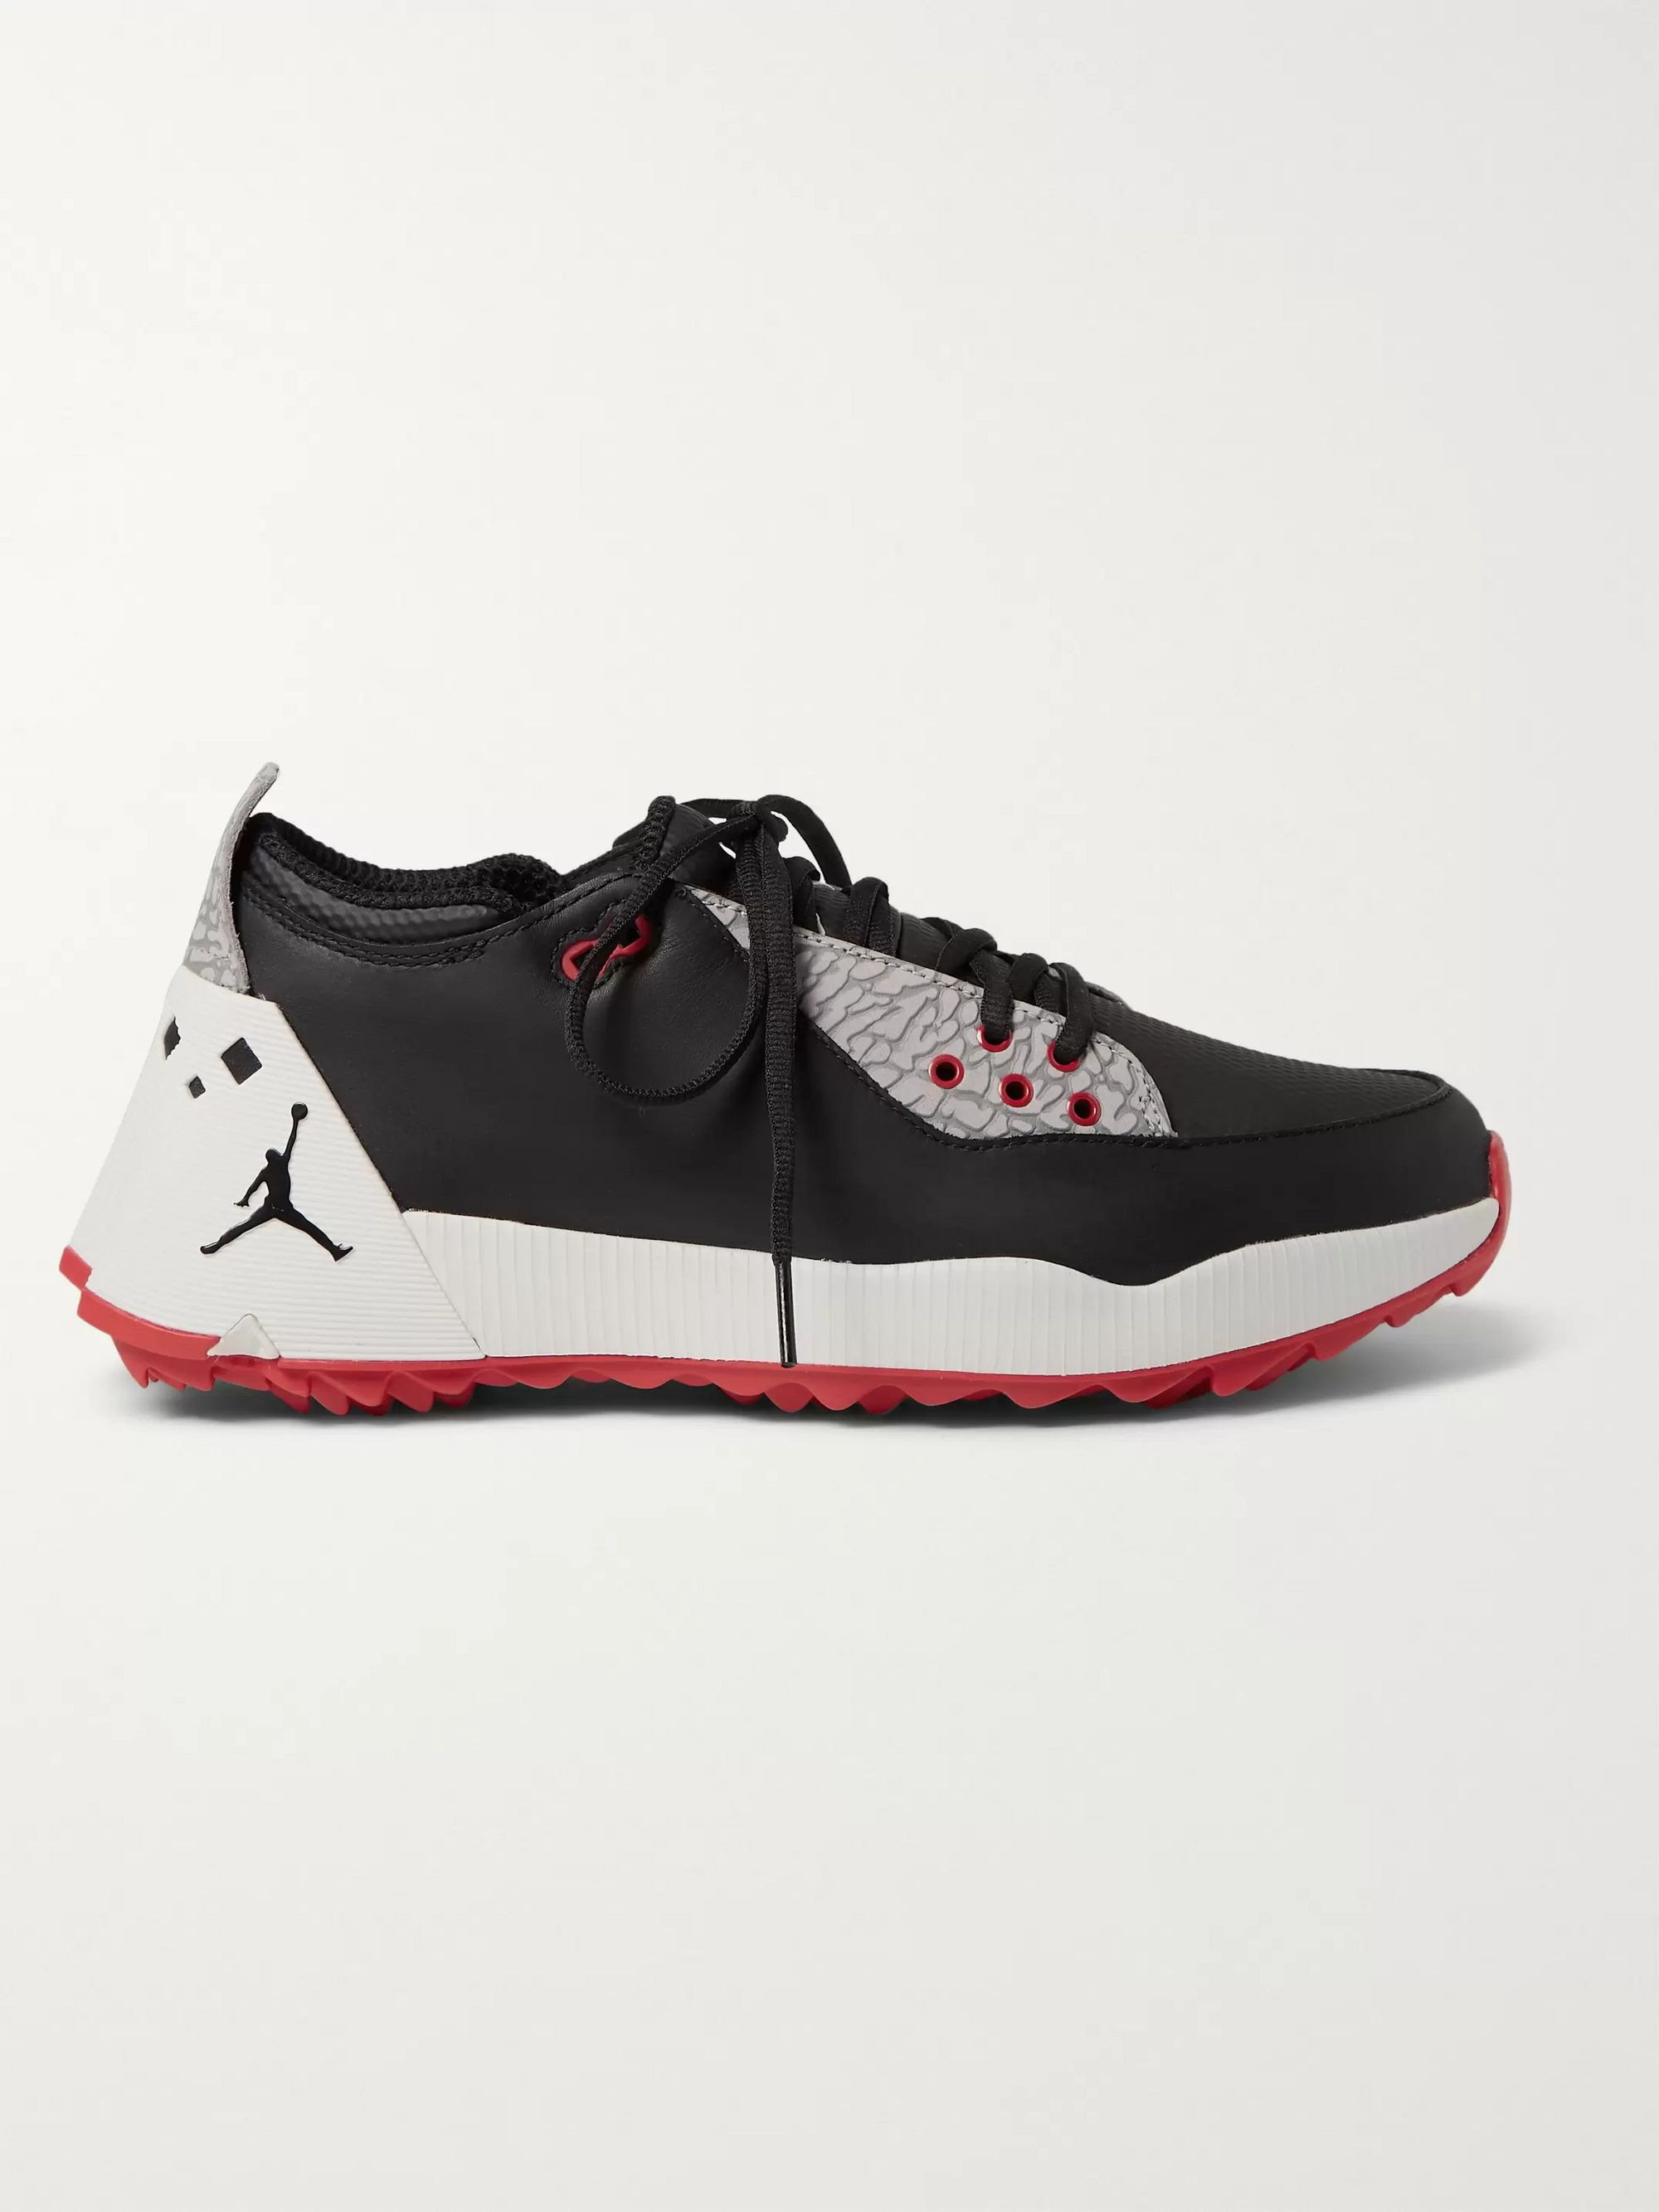 Nike Golf Jordan ADG 2 Mesh-Trimmed Leather Golf Shoes